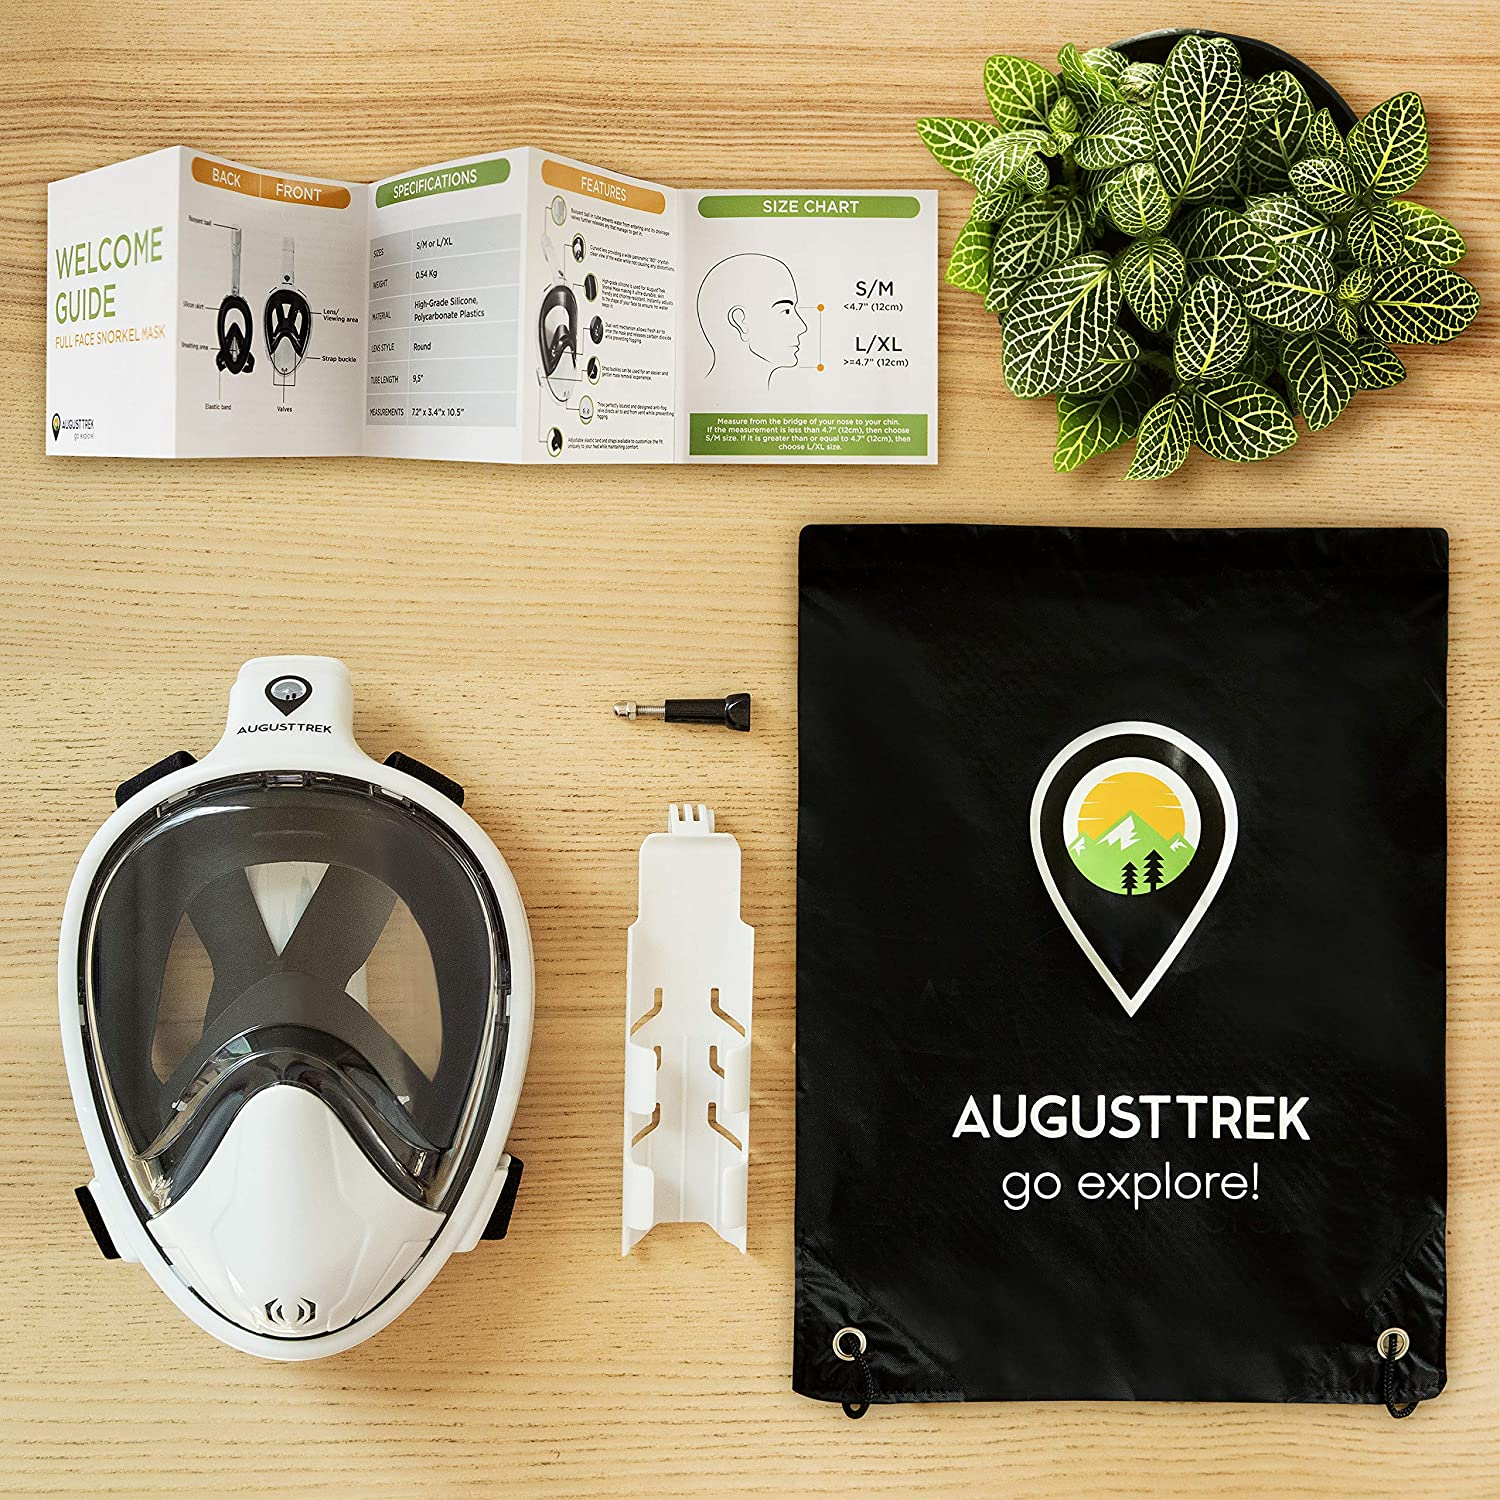 Foldable Tube and Upgraded Wide 180/° Lens Breathe Comfortably with Enhanced Easy Breathing Technology. Full Face Design Largest in Market AugustTrek ONE80 GoPro Compatible Snorkel Mask